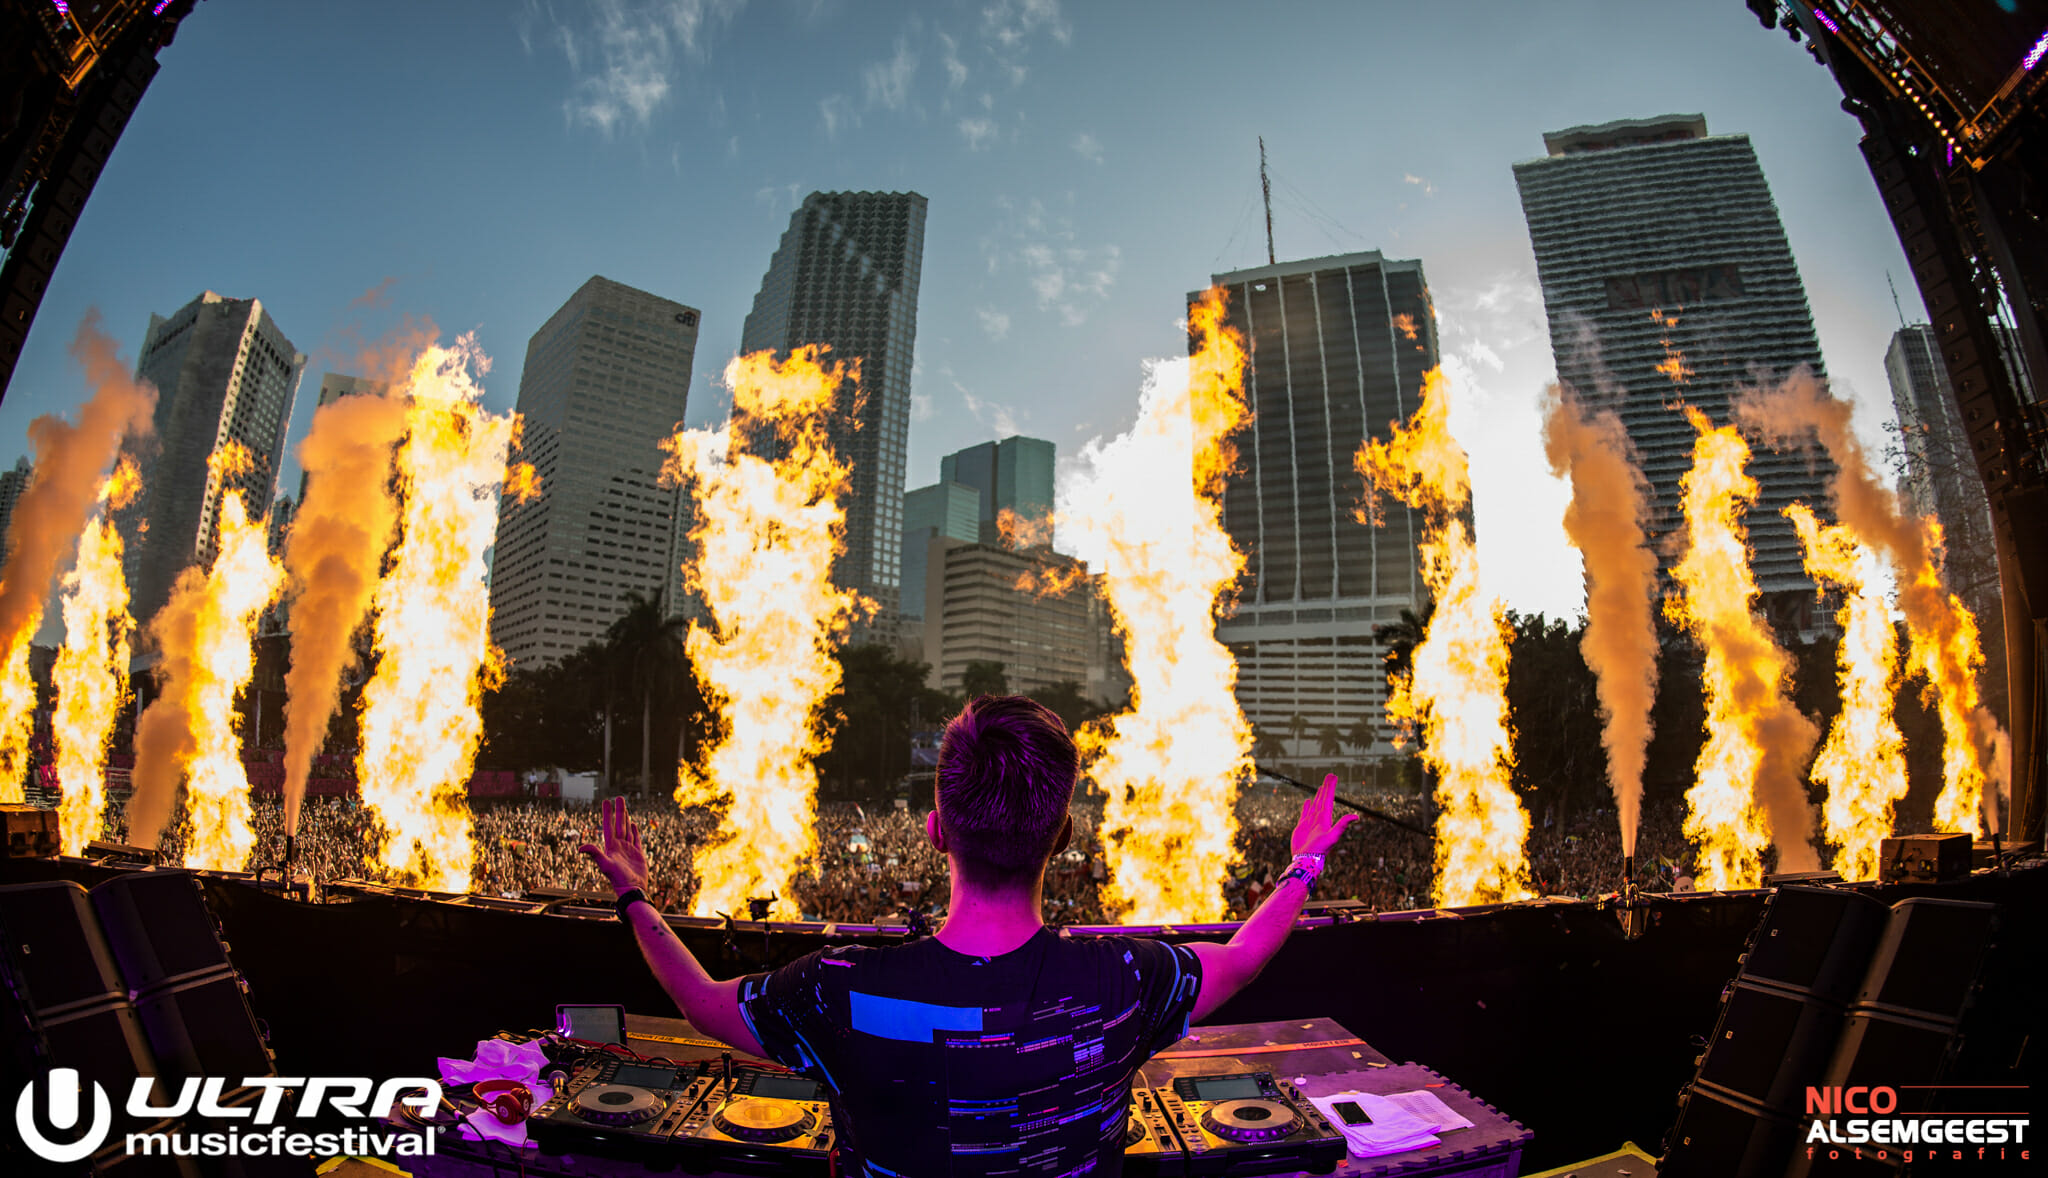 Stream full sets from the first day of Ultra Music FestivalNRULTRA CLEAN